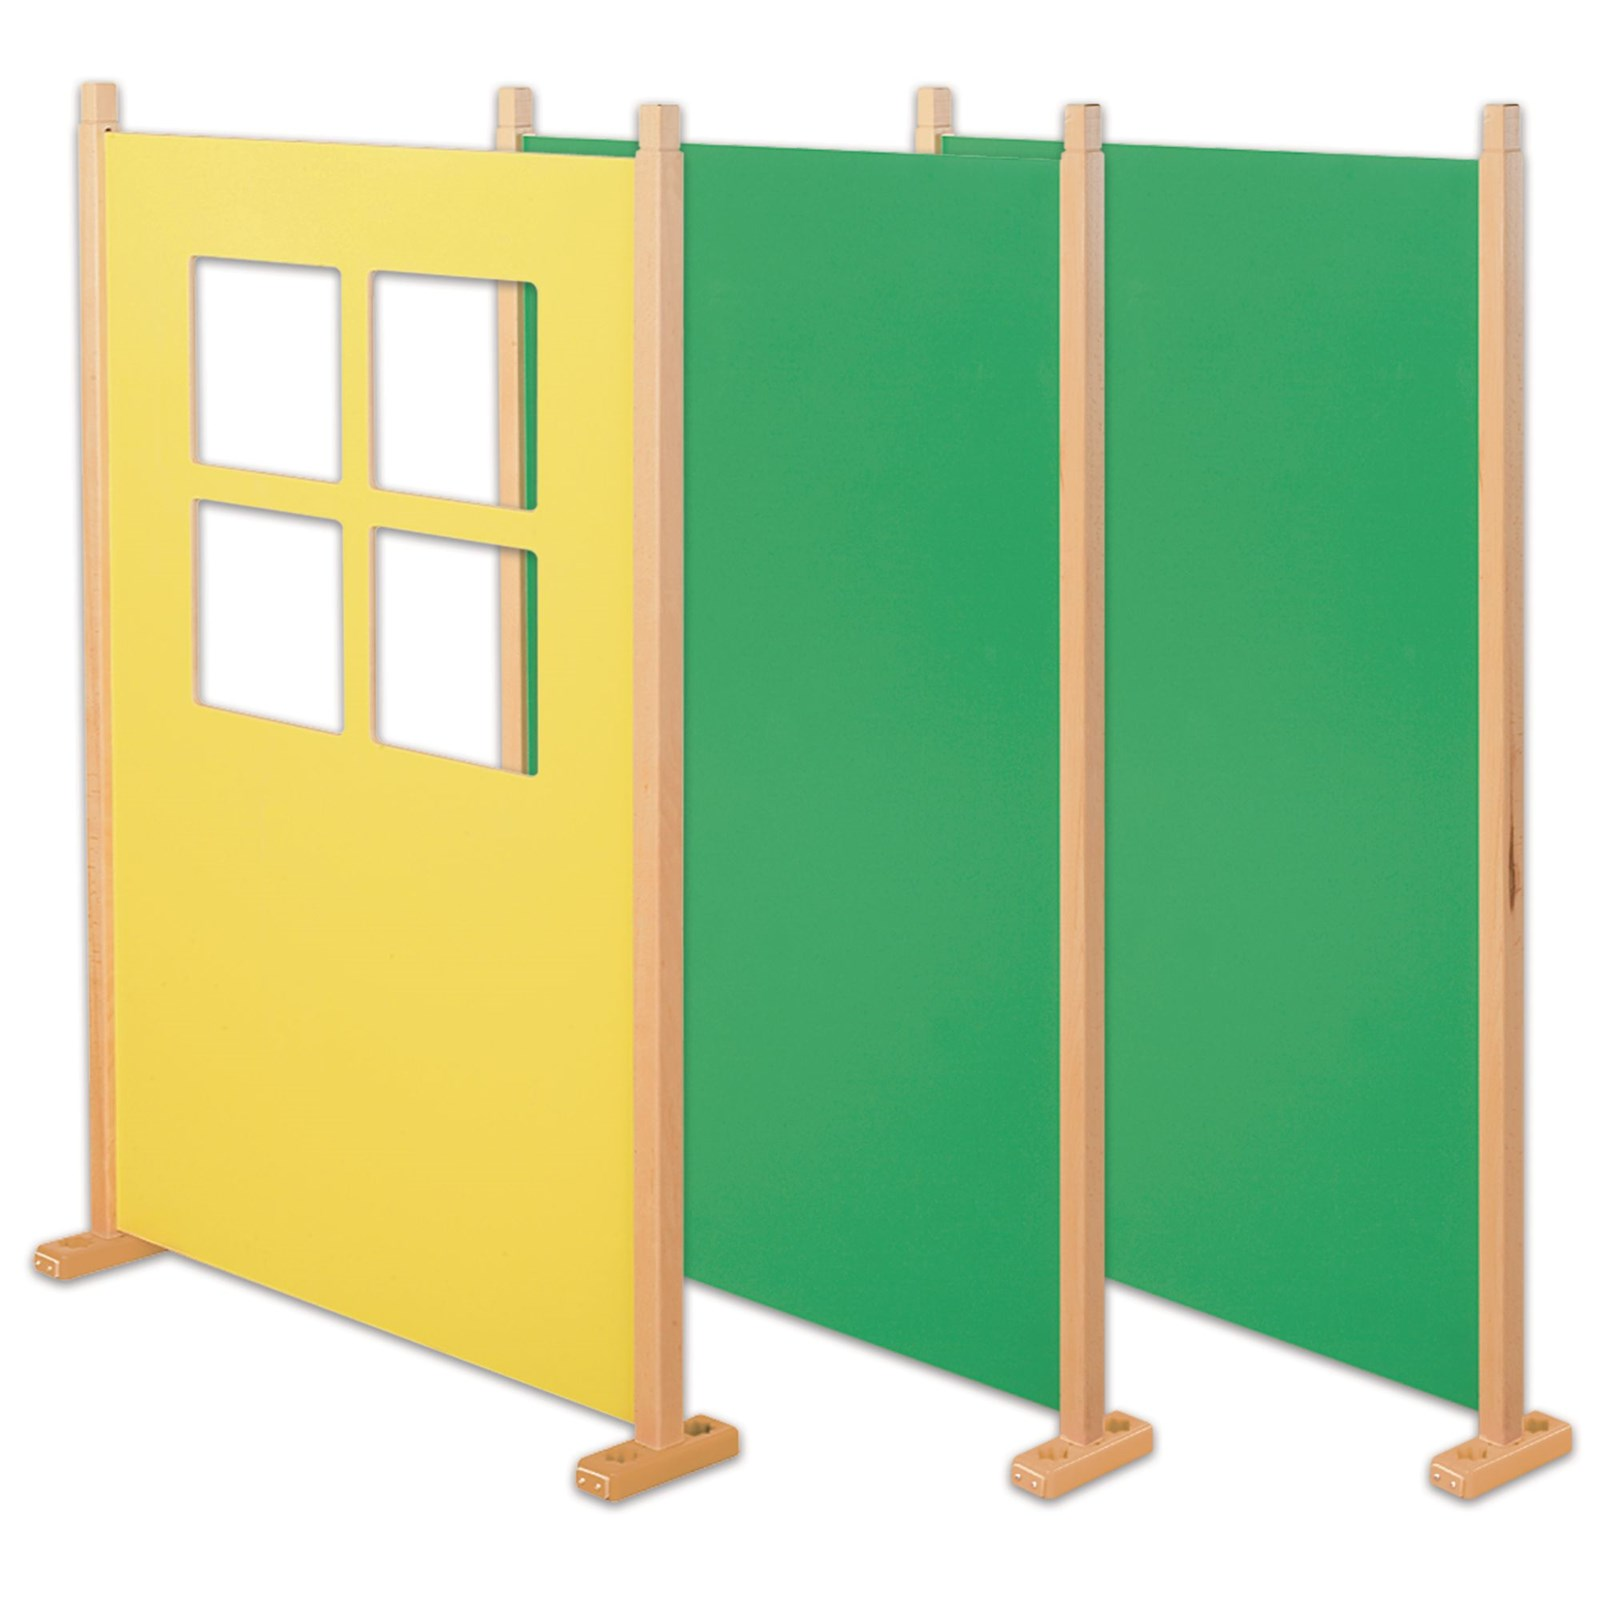 Millhouse - Role Play Panels - Mulitbuy Offer Pack of 3